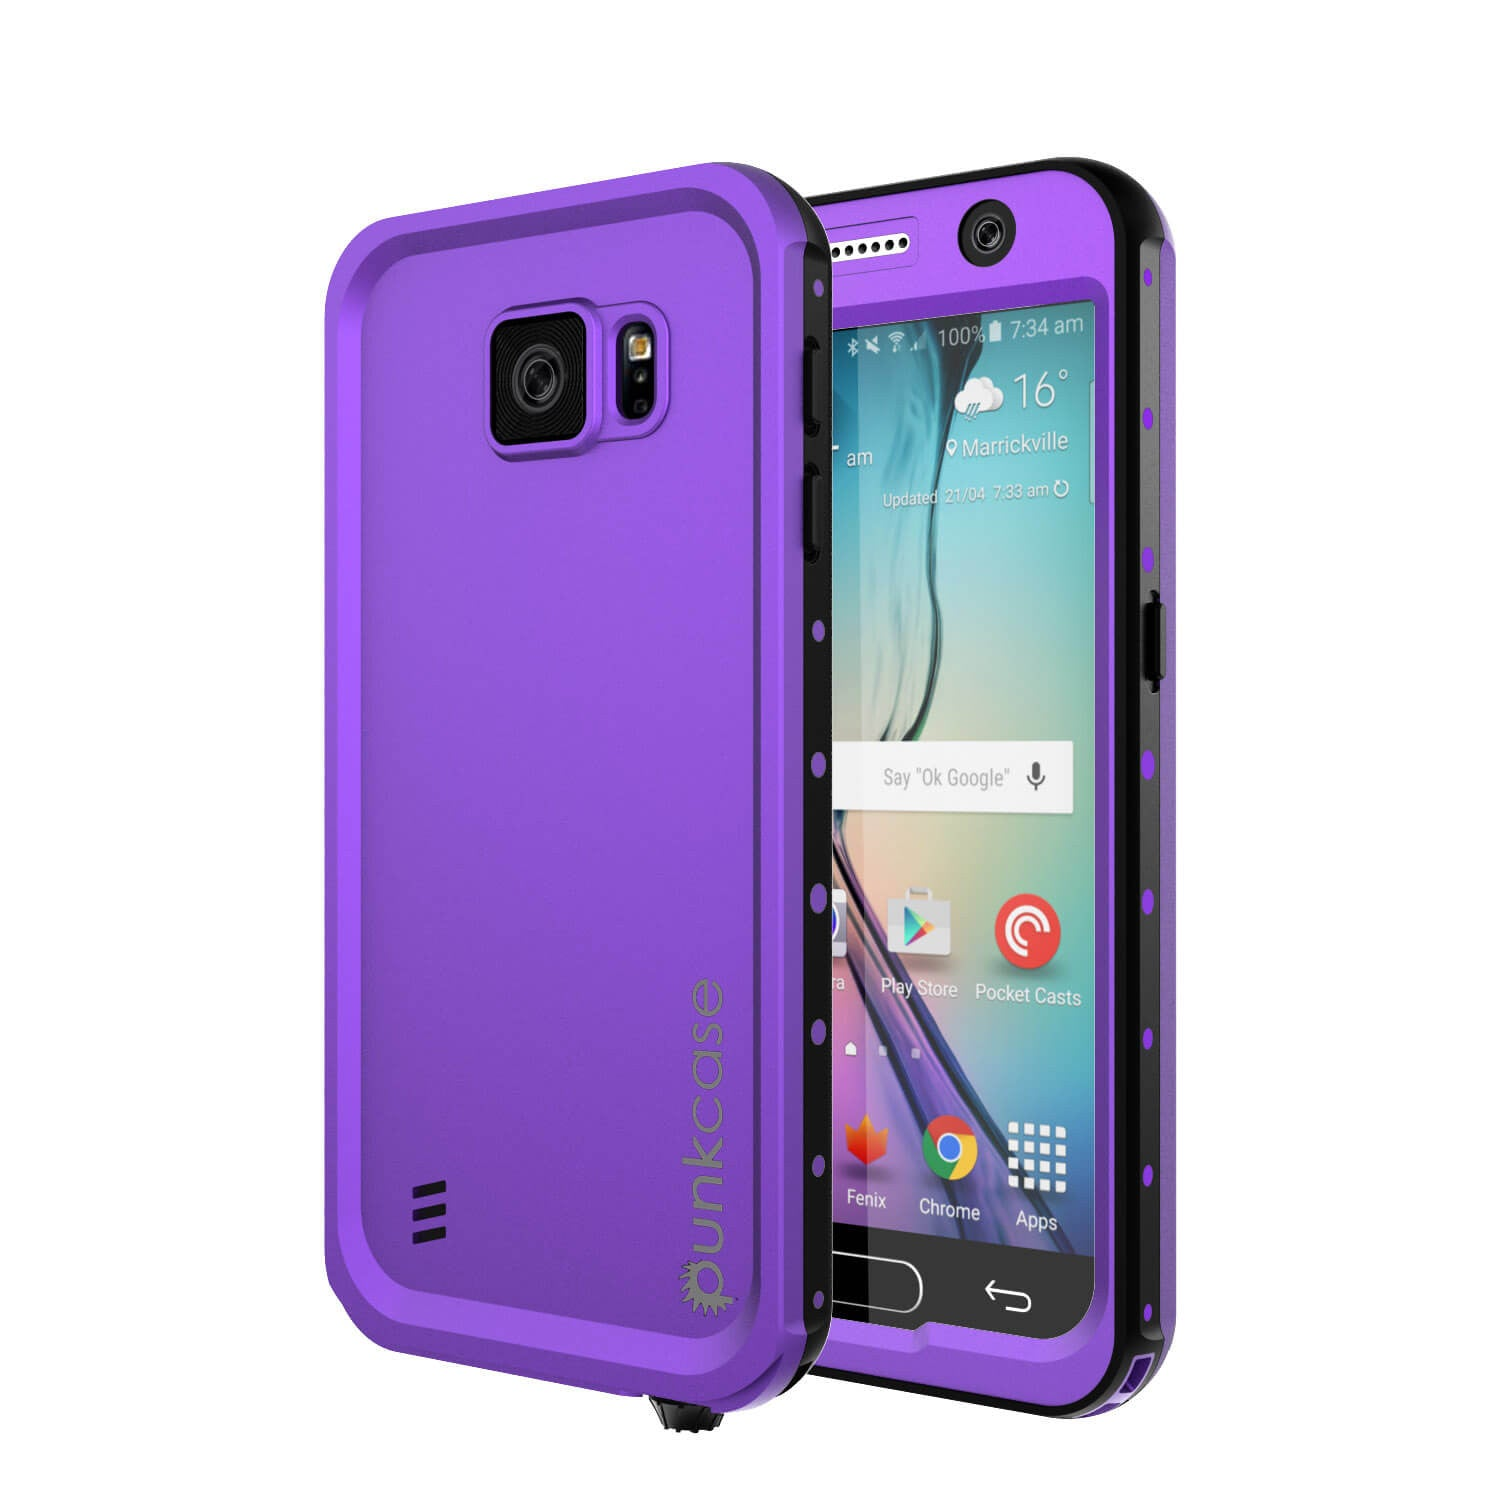 Galaxy S6 Waterproof Case PunkCase StudStar Purple Thin 6.6ft Underwater IP68 Shock/Dirt/Snow Proof